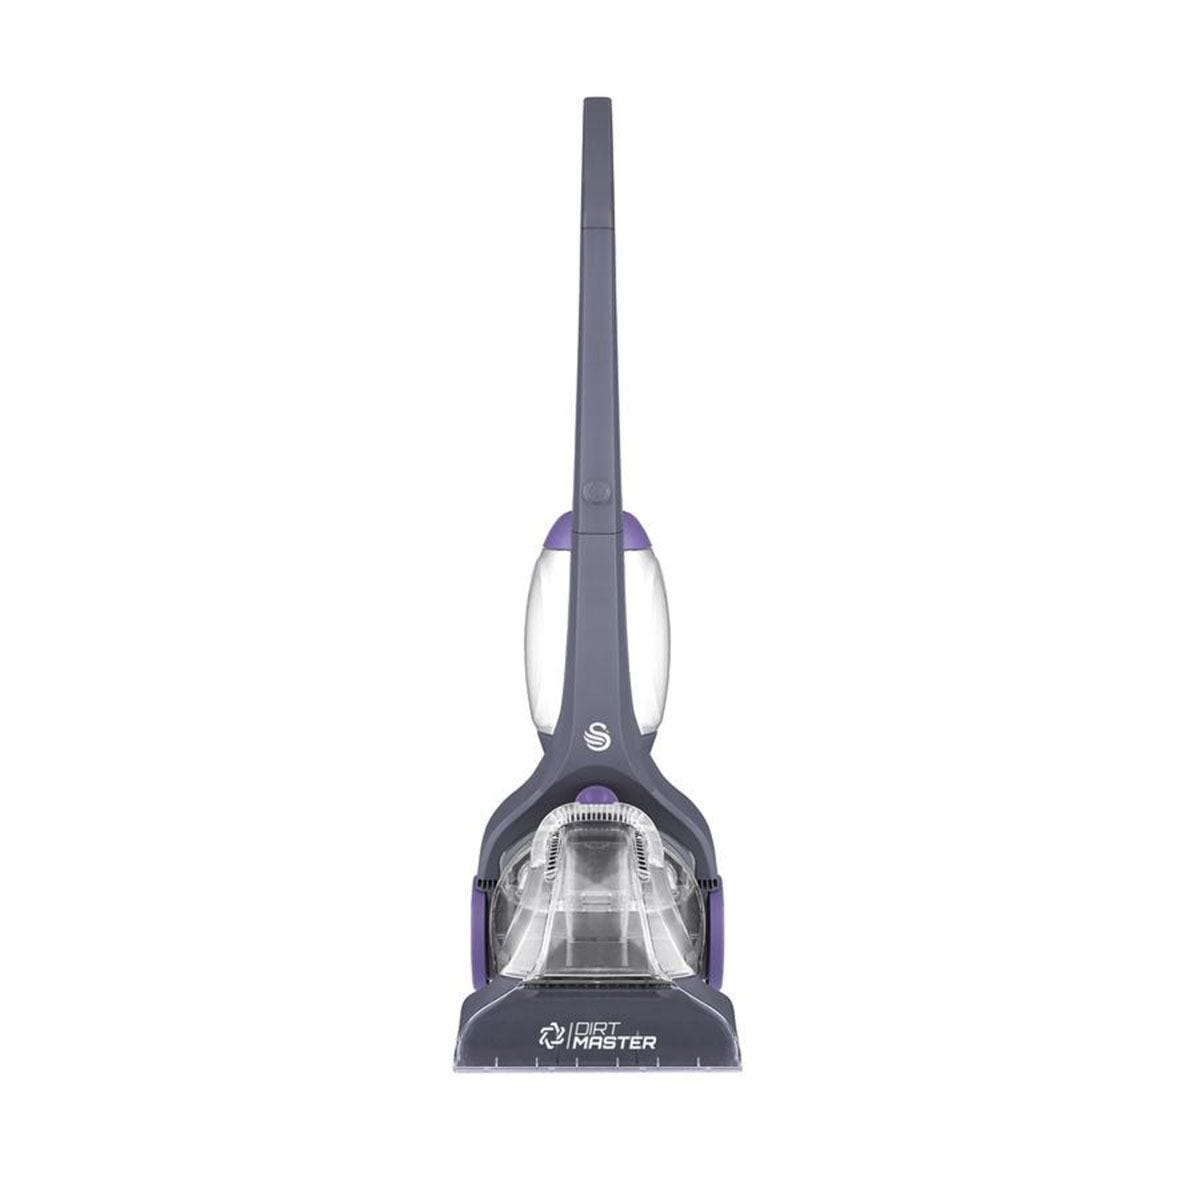 Swan SC17310N Dirtmaster Carpet Washer - Black